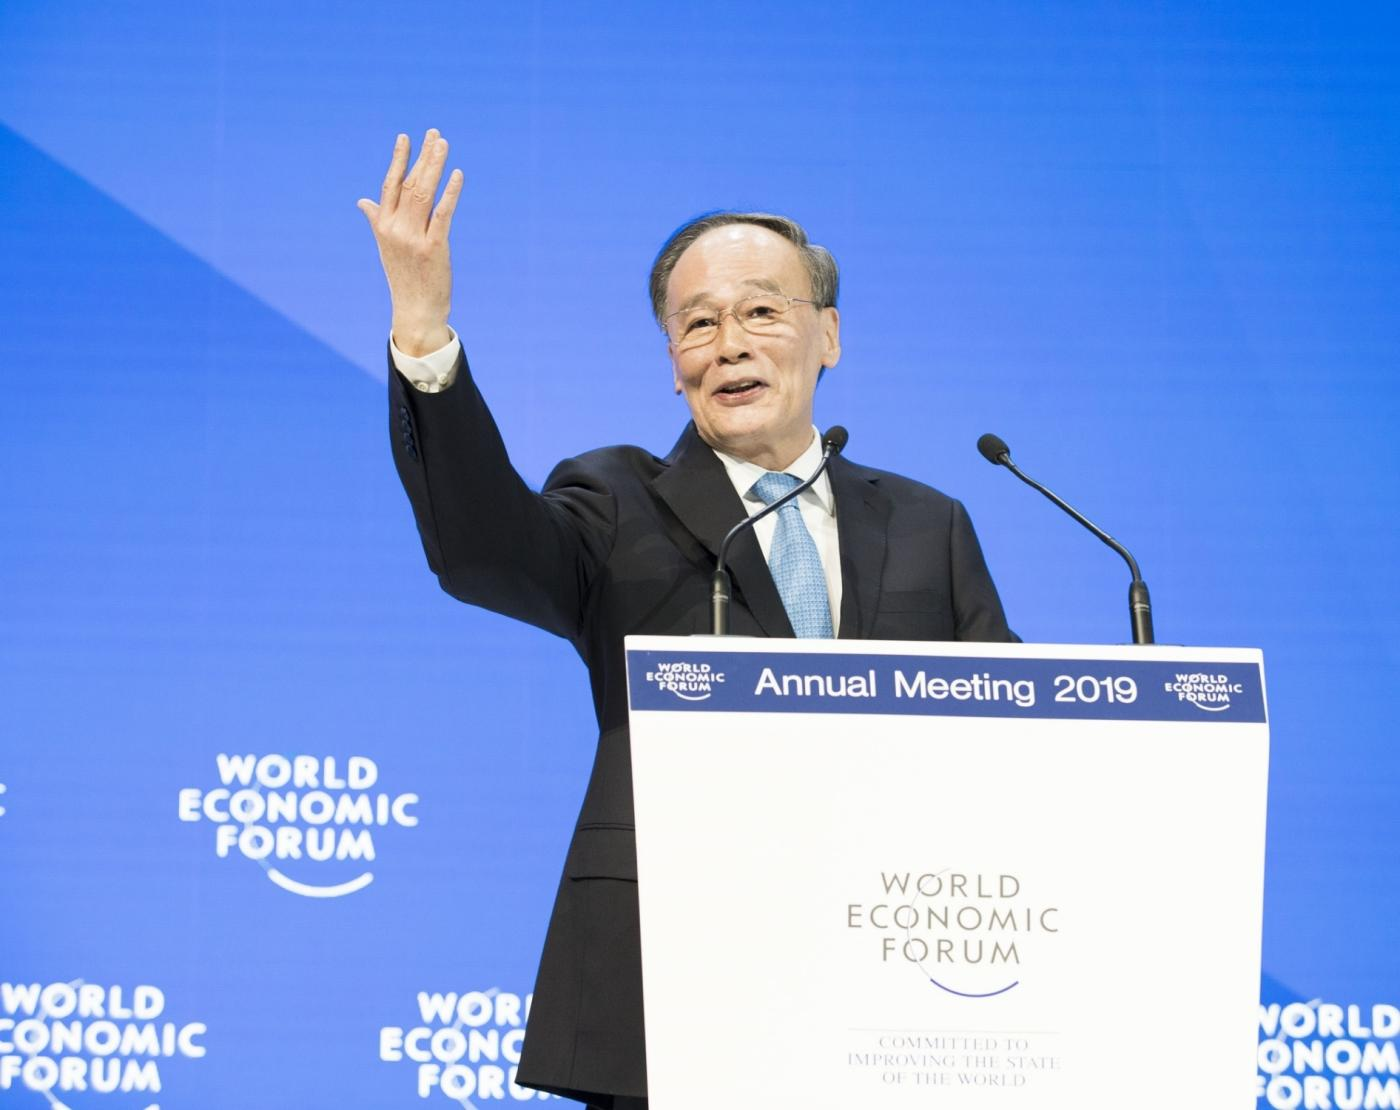 DAVOS, Jan. 23, 2019 (Xinhua) -- Chinese Vice President Wang Qishan addresses the 2019 annual meeting of the World Economic Forum in Davos, Switzerland, on Jan. 23, 2019. (Xinhua/Huang Jingwen/IANS) by .